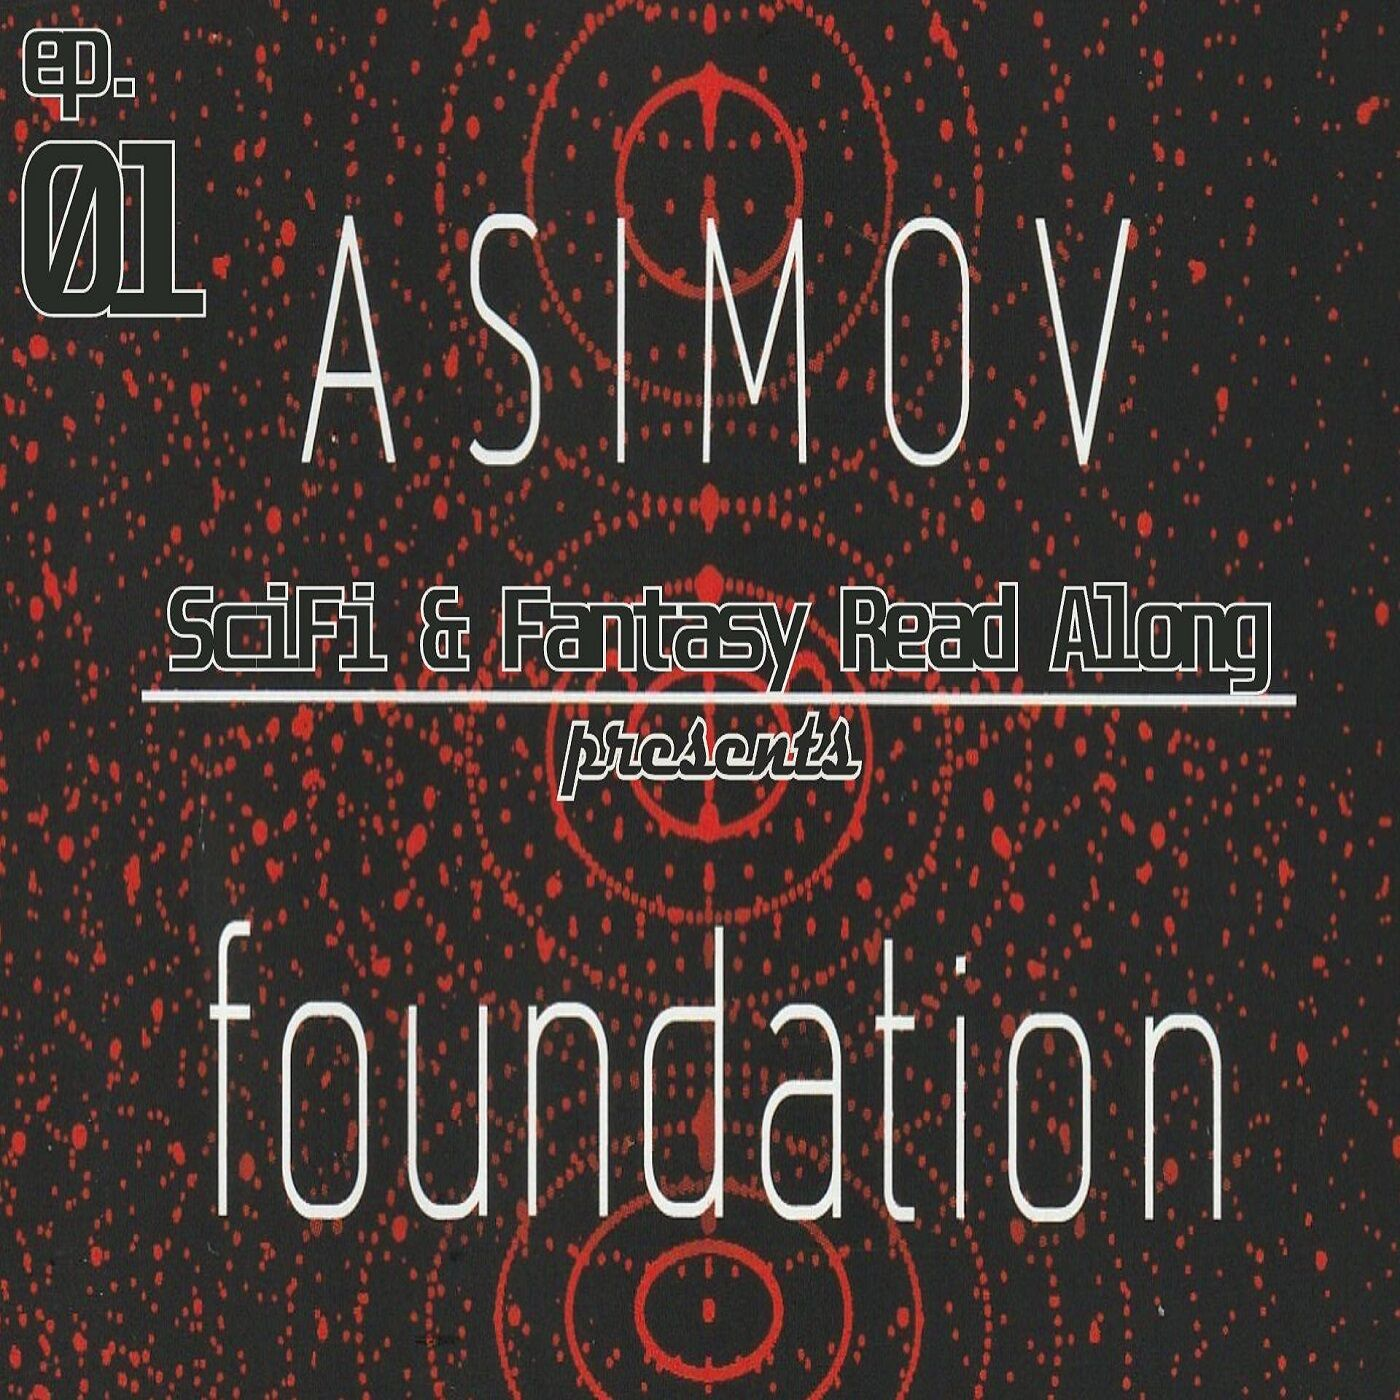 discussing Foundation by Isaac Asimov -- part 1